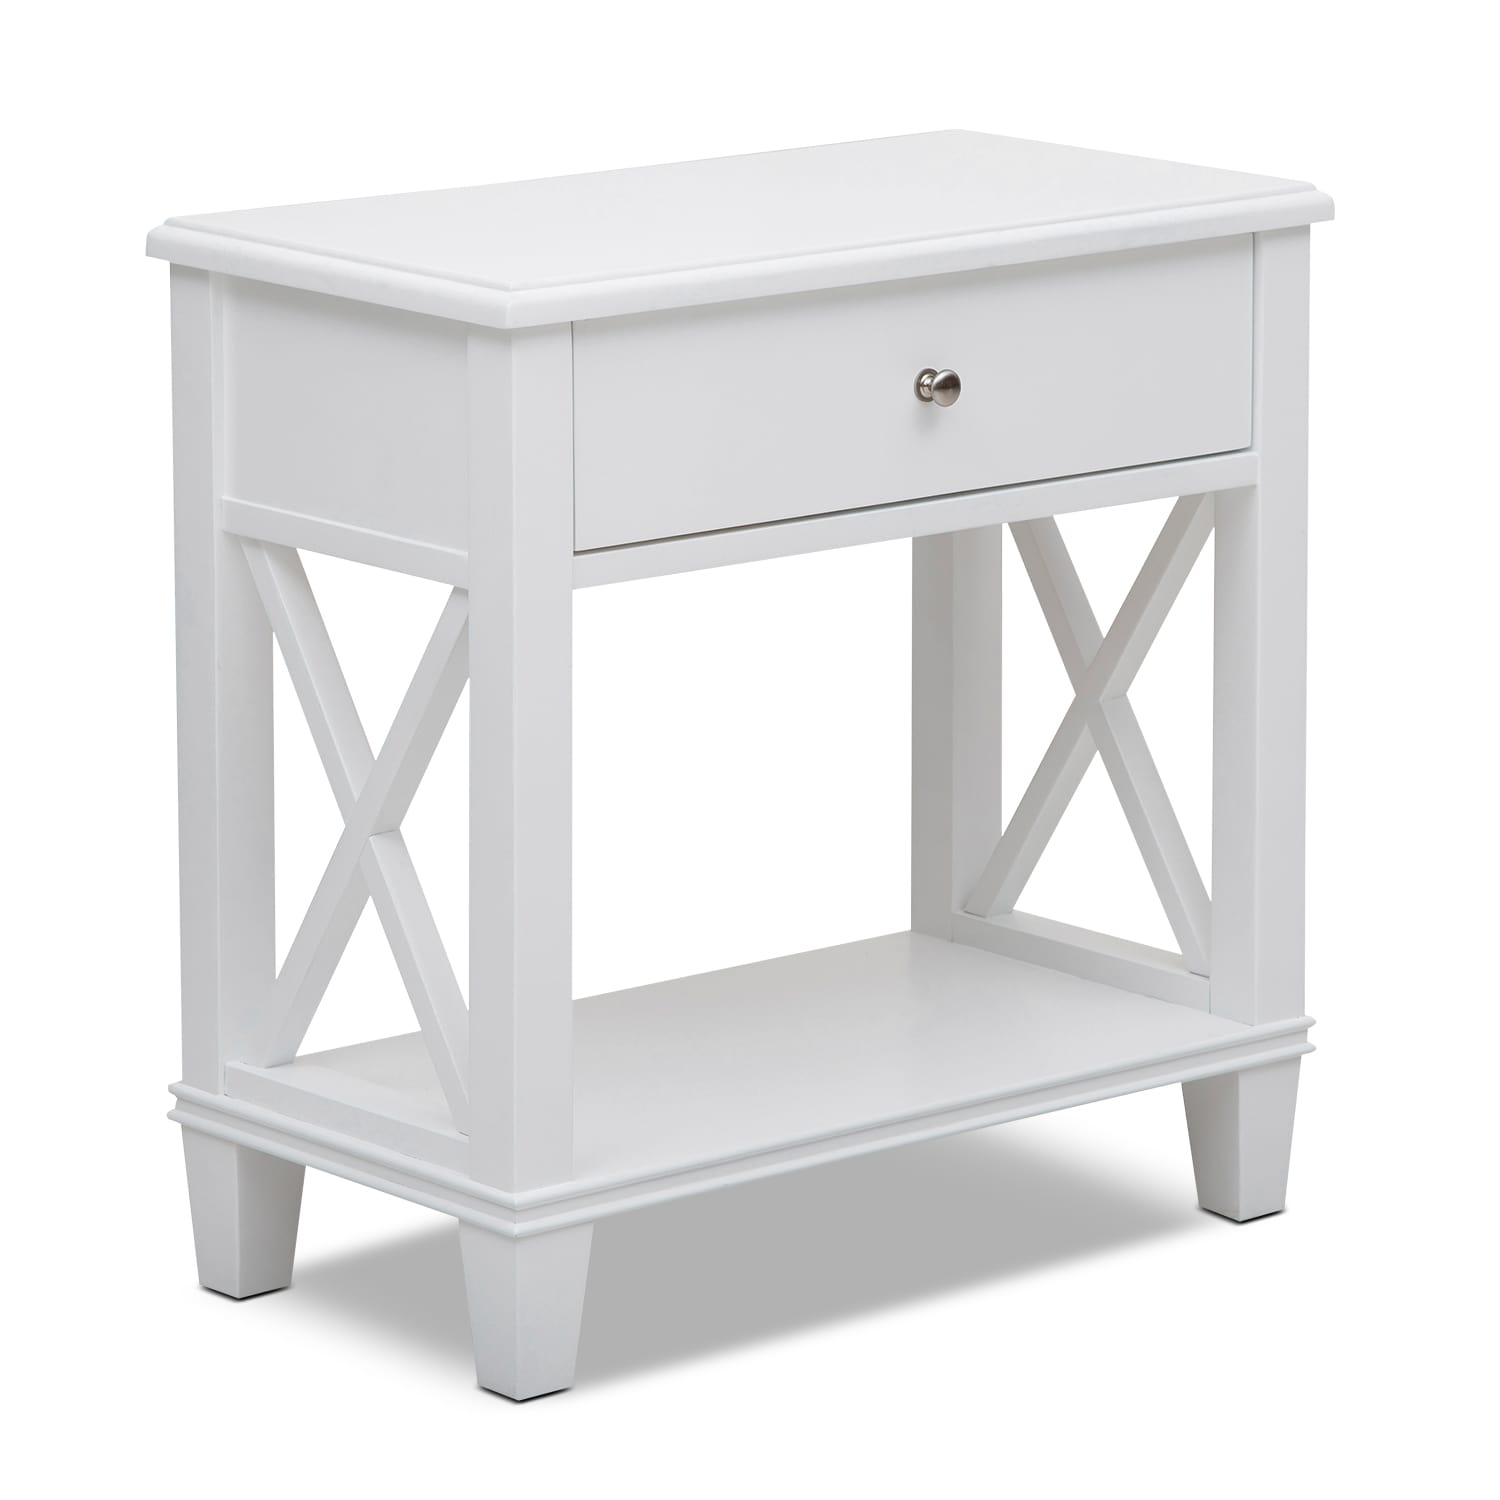 Accent and Occasional Furniture - Liat Accent Table - White